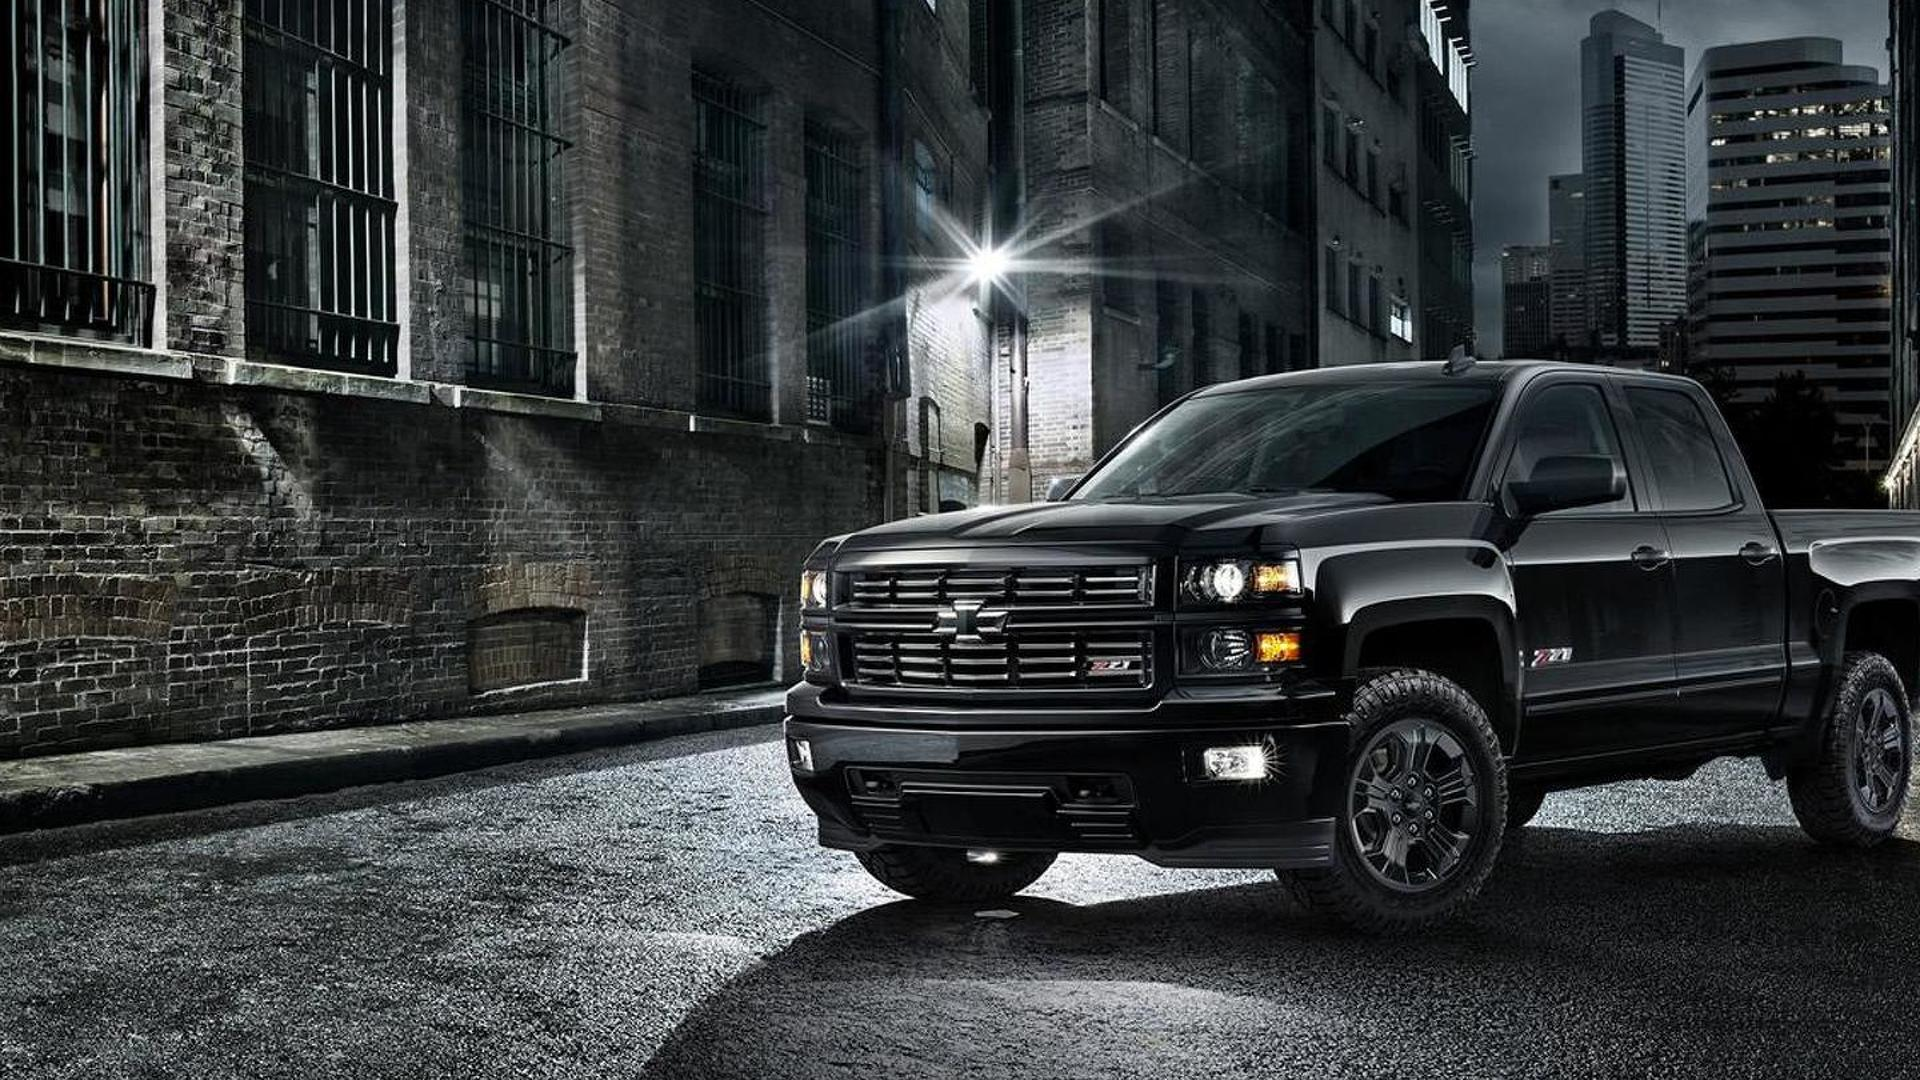 Chevrolet Silverado Midnight Edition revealed with all-black look